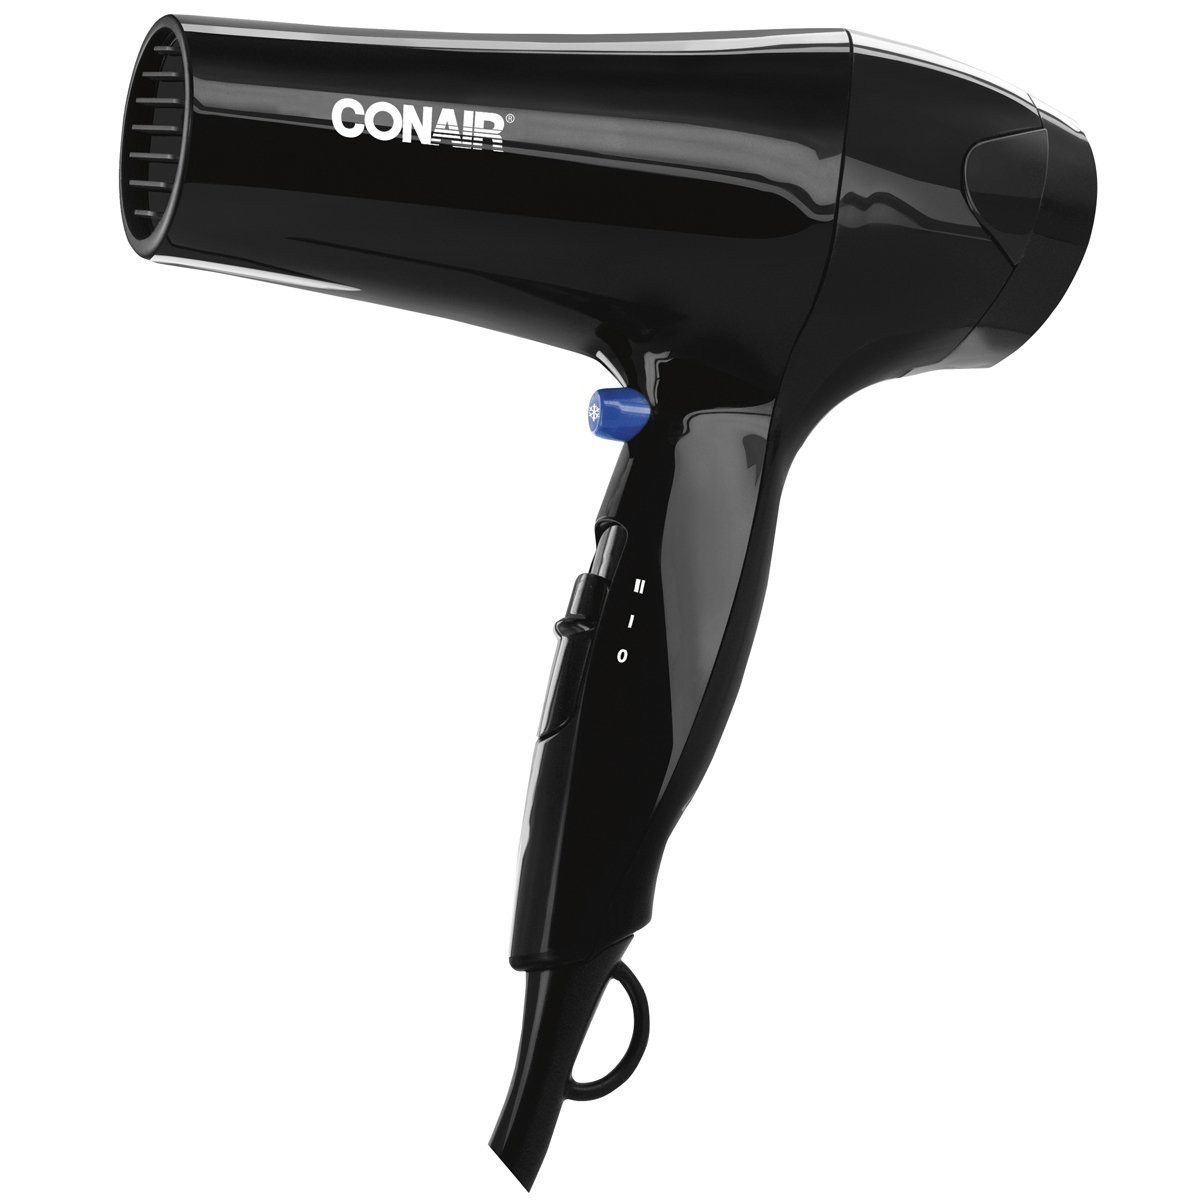 conair you style hair dryer review conair 1875 watt tourmaline ceramic styler hair dryer 5121